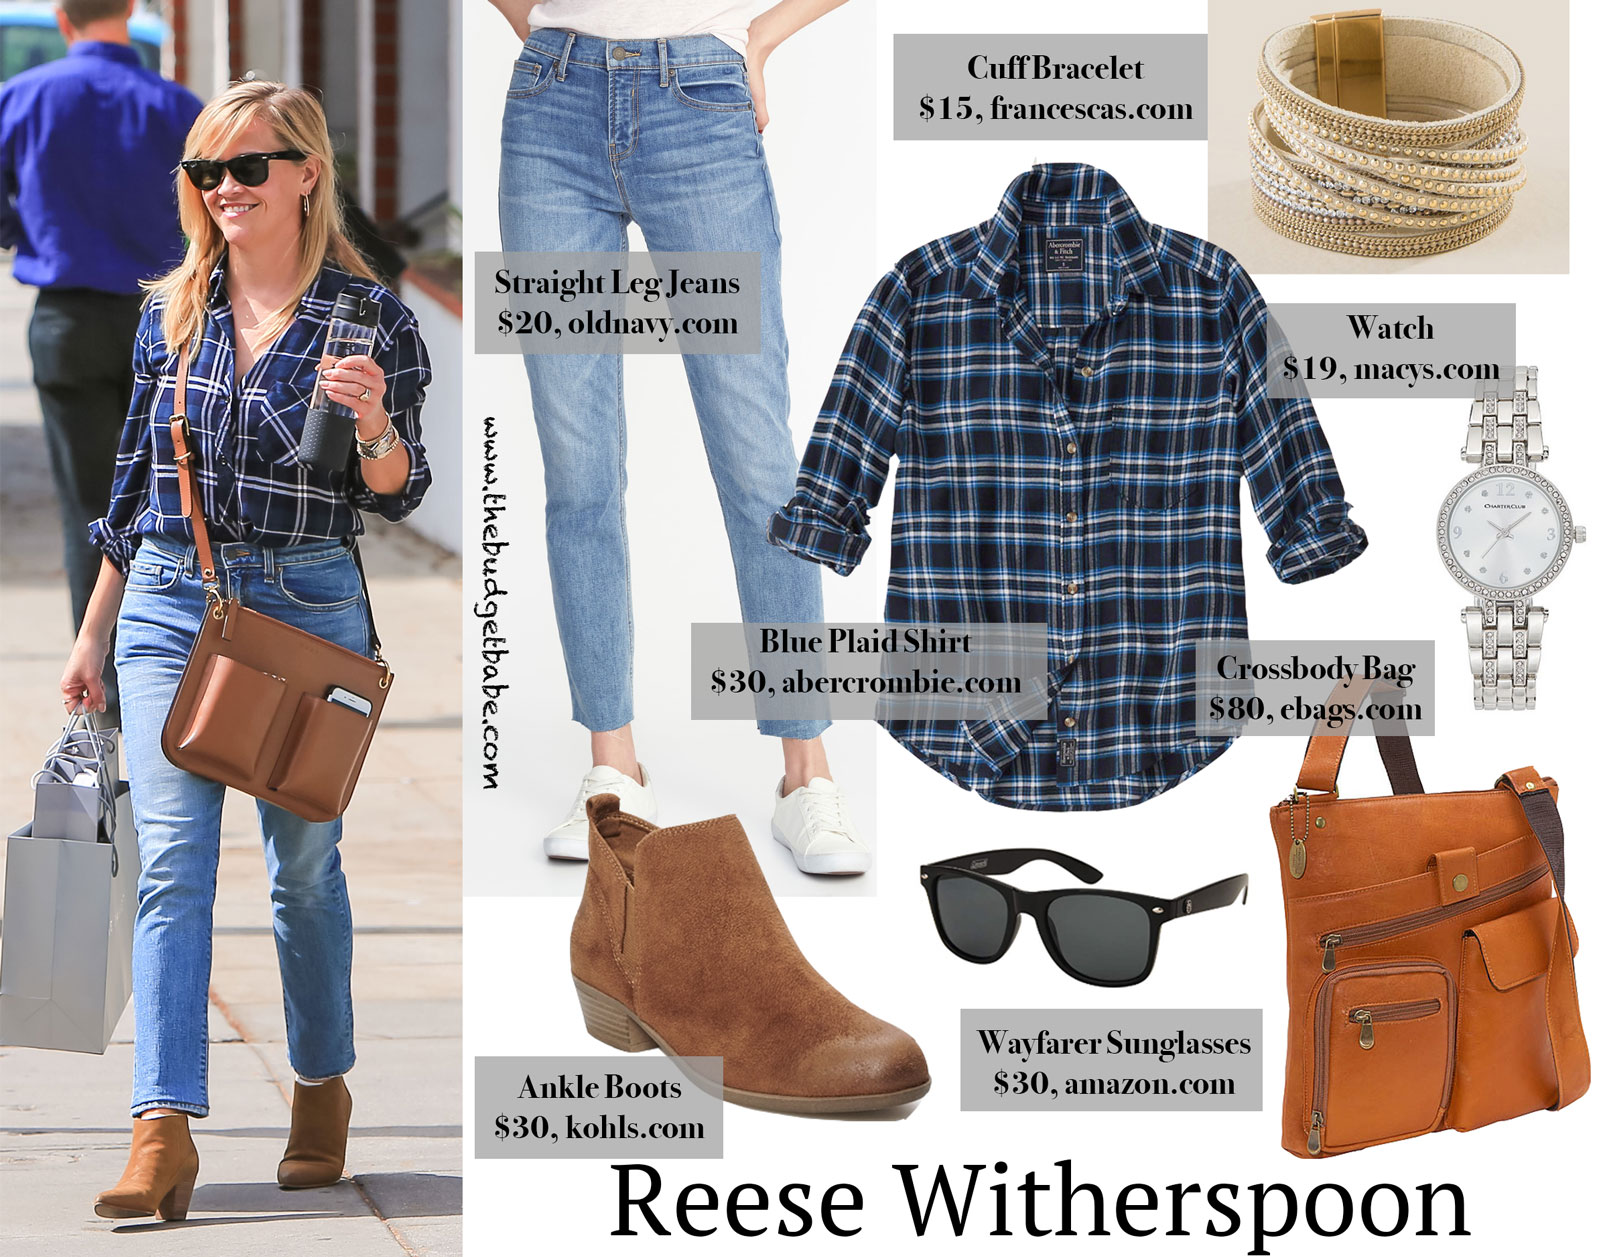 Reese Witherspoon Plaid Shirt and Cognac Ankle Boots Look for Less